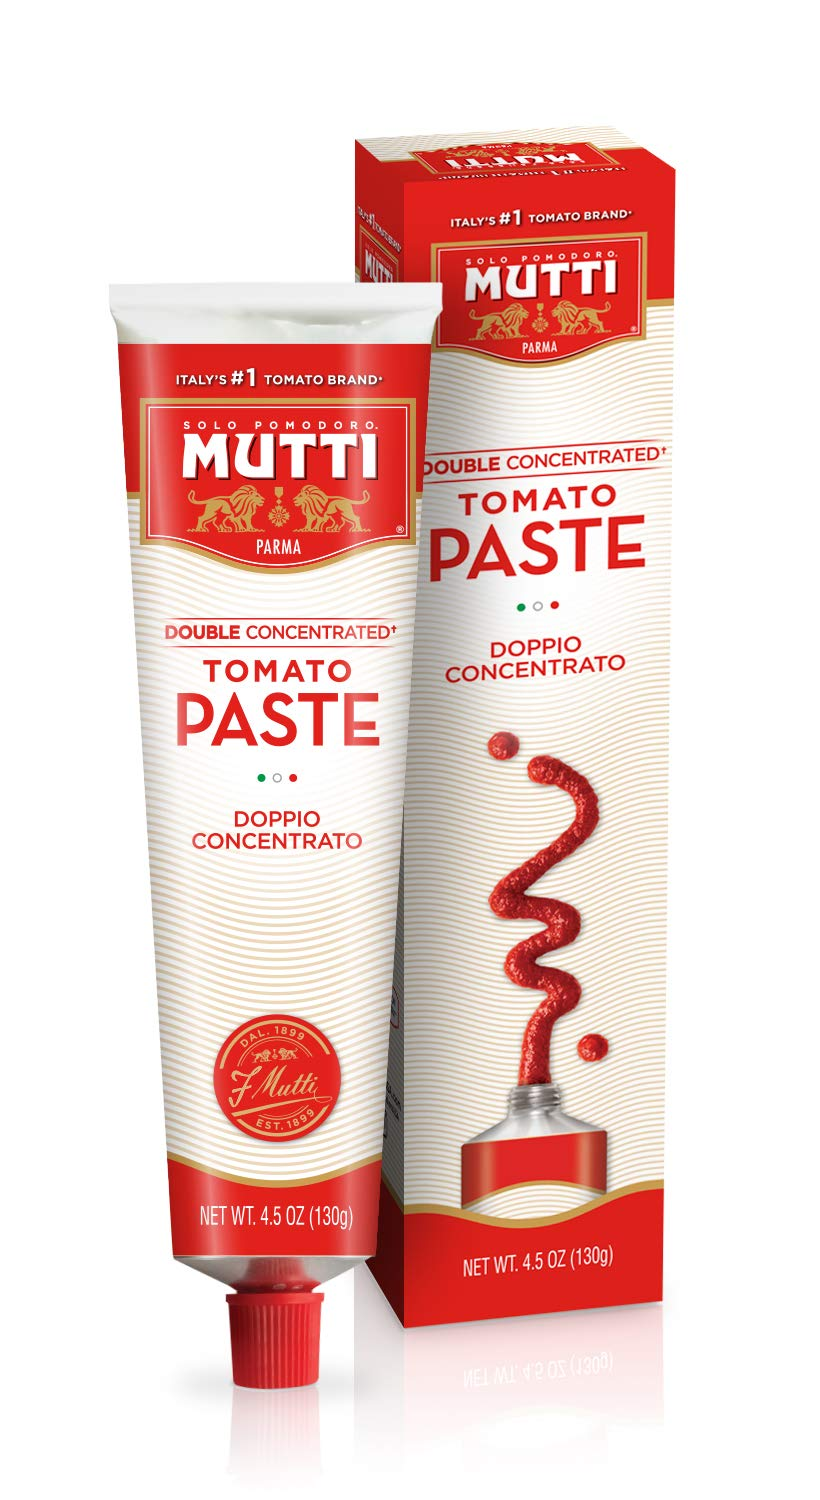 Mutti — 4.5 oz. 12 Pack of Double Concentrated Tomato Paste - Tube (Doppio Concentrato) from Italy's #1 Tomato Brand. Adds rich flavor to recipes calling for Tomato Paste.